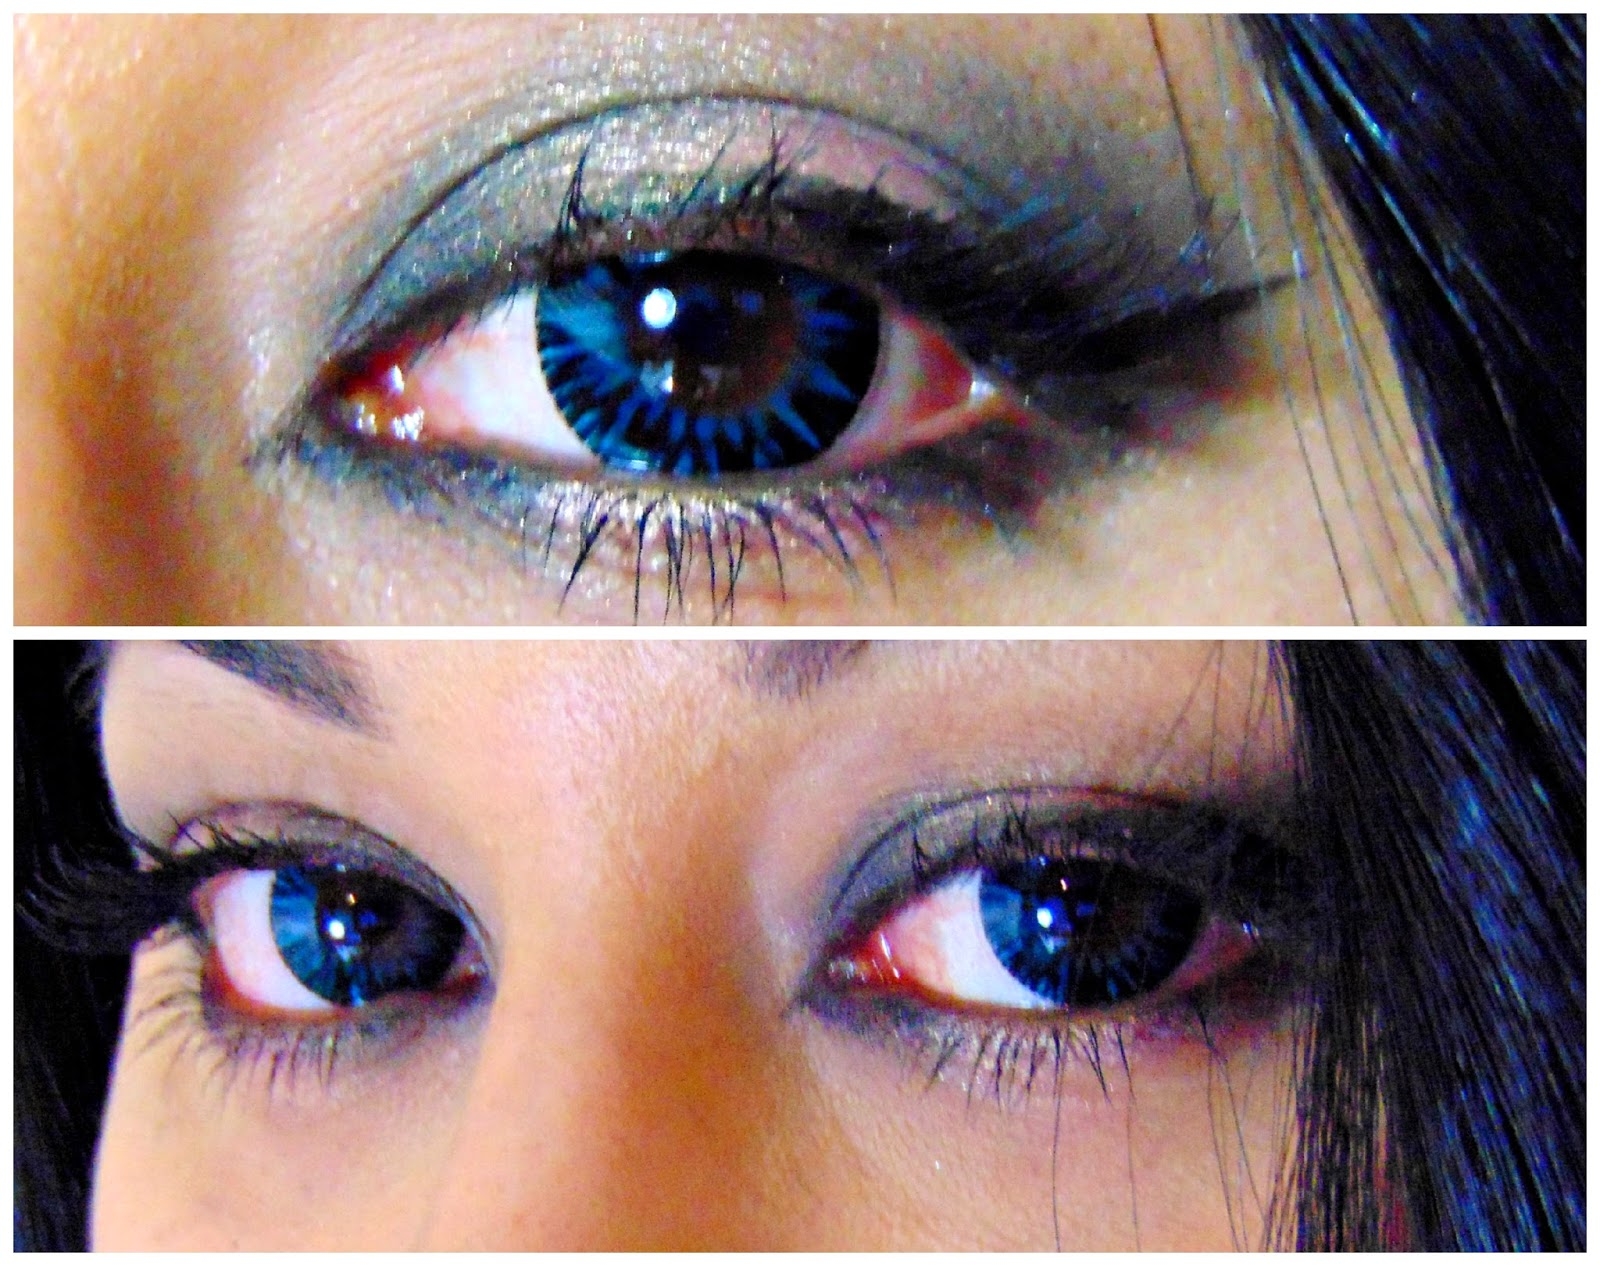 spooky eyes blue shimmer contact lenses chocolate lipstick